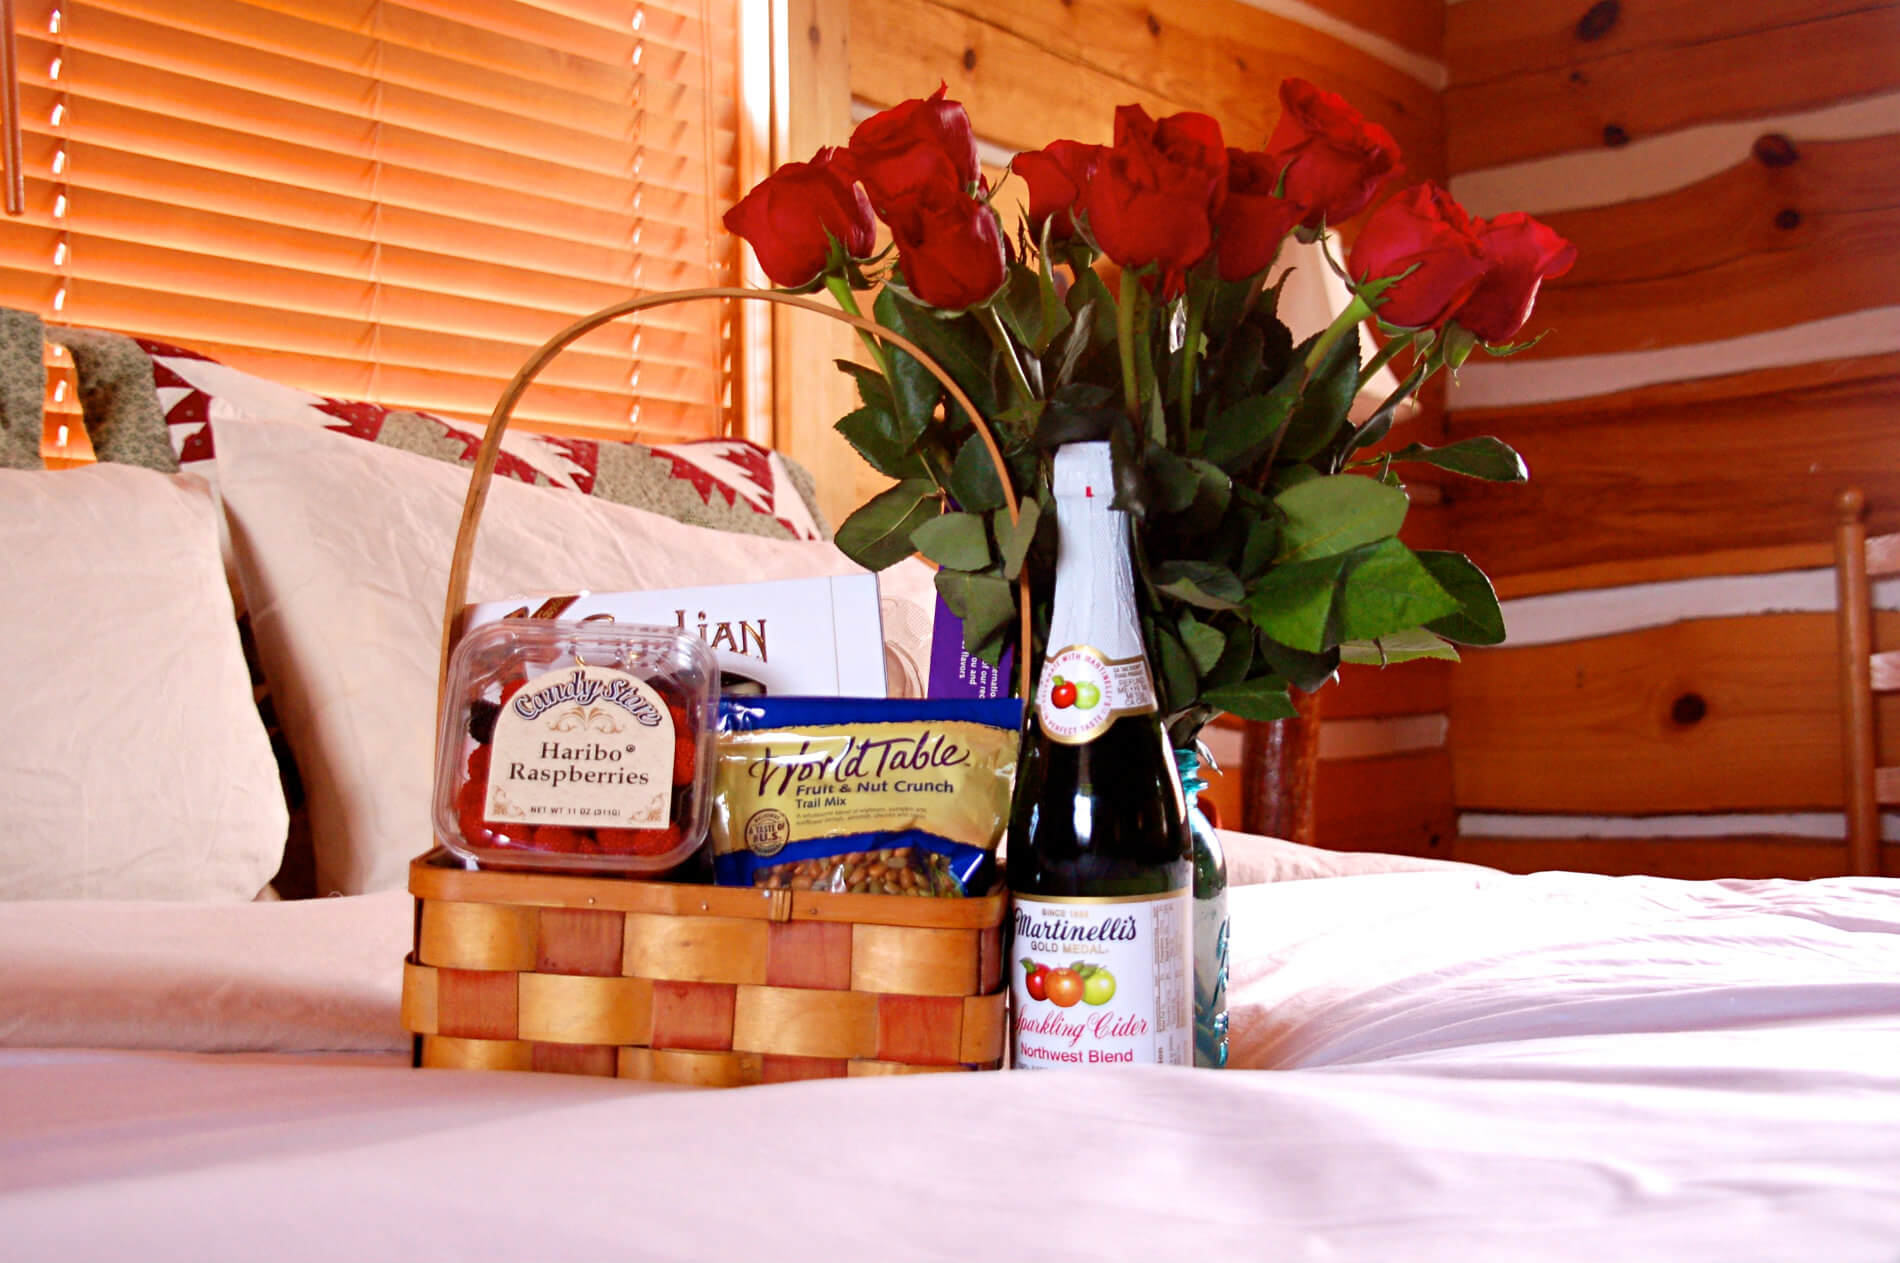 Basket of choclate and other treats with bottle of sparkling cider on a white bedspread with red roses